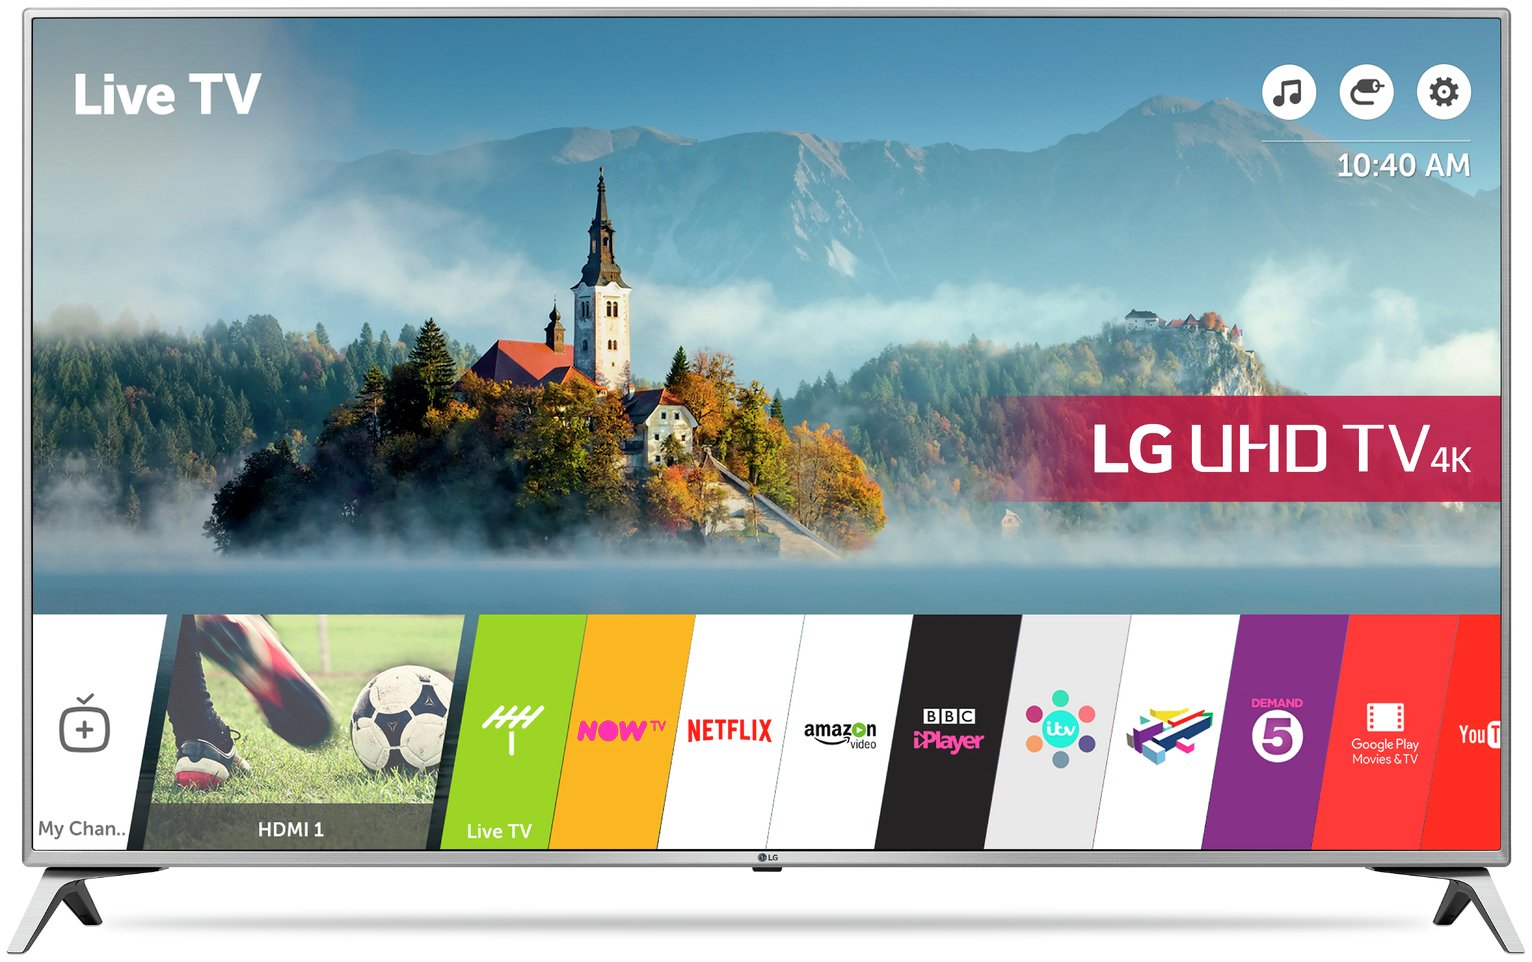 LG 43UJ651V 43 Inch Smart Ultra HD TV with HDR.